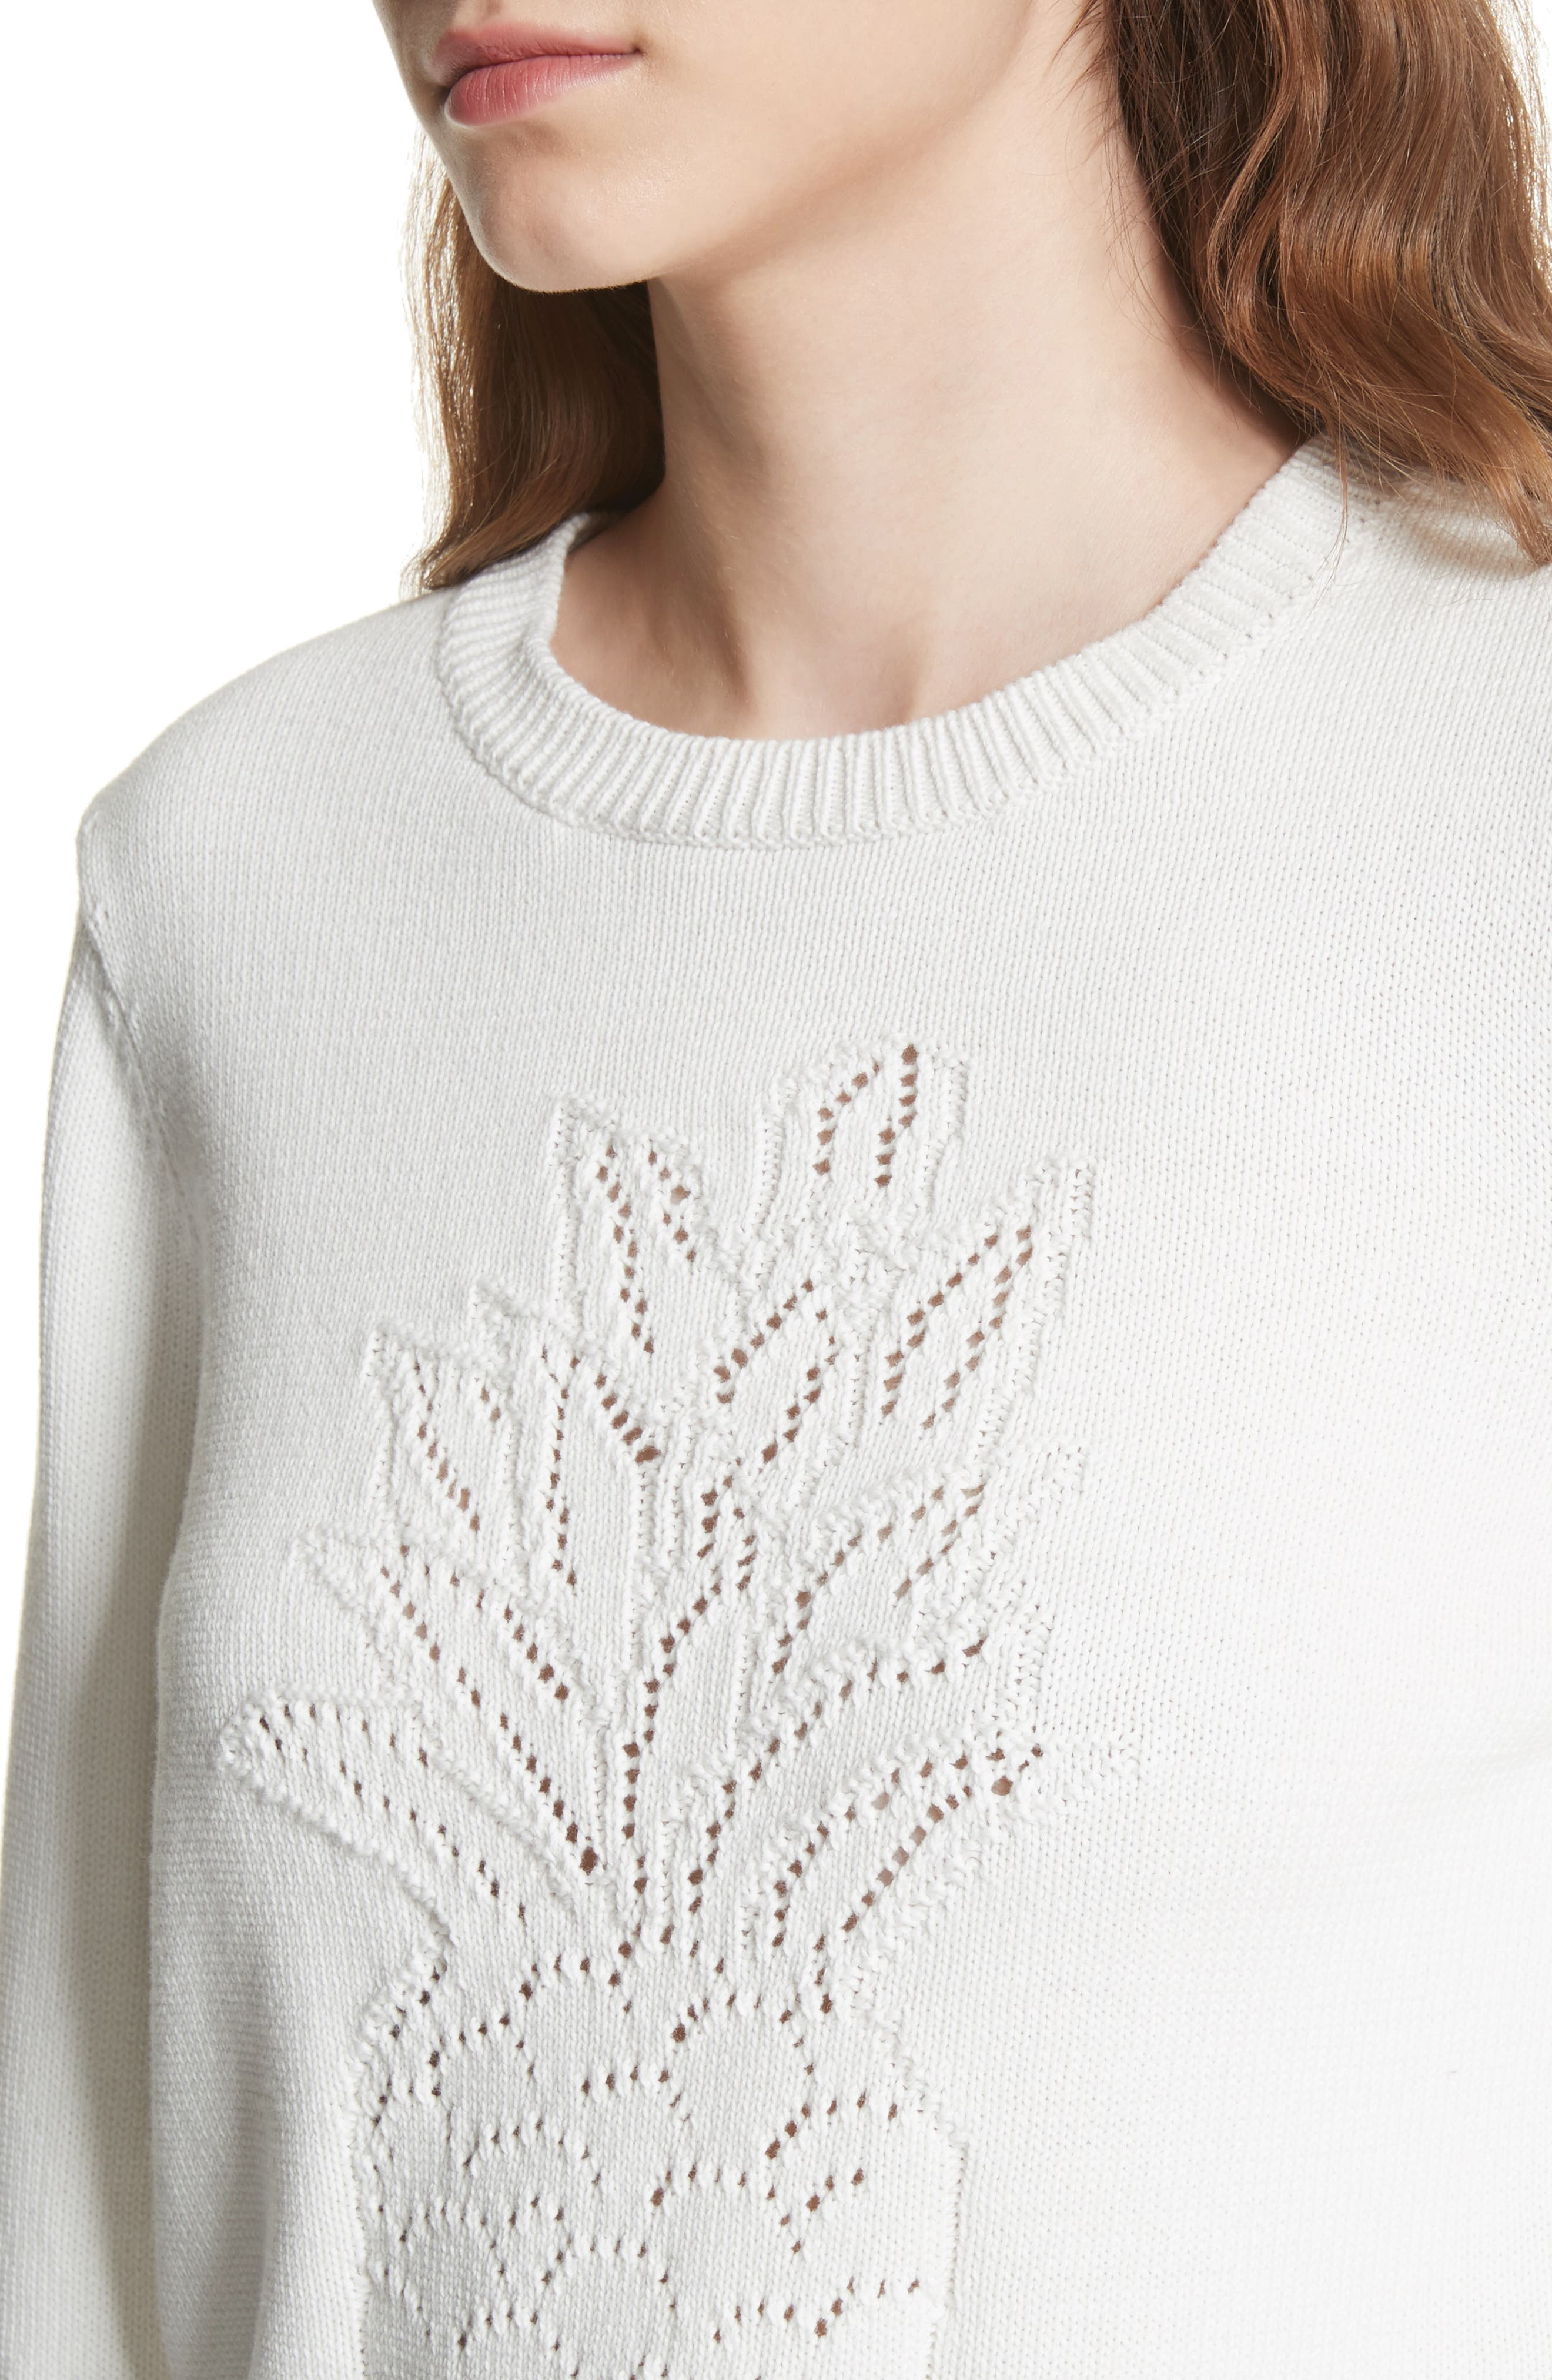 Barin Pineapple Cotton Sweater,                             Alternate thumbnail 4, color,                             120